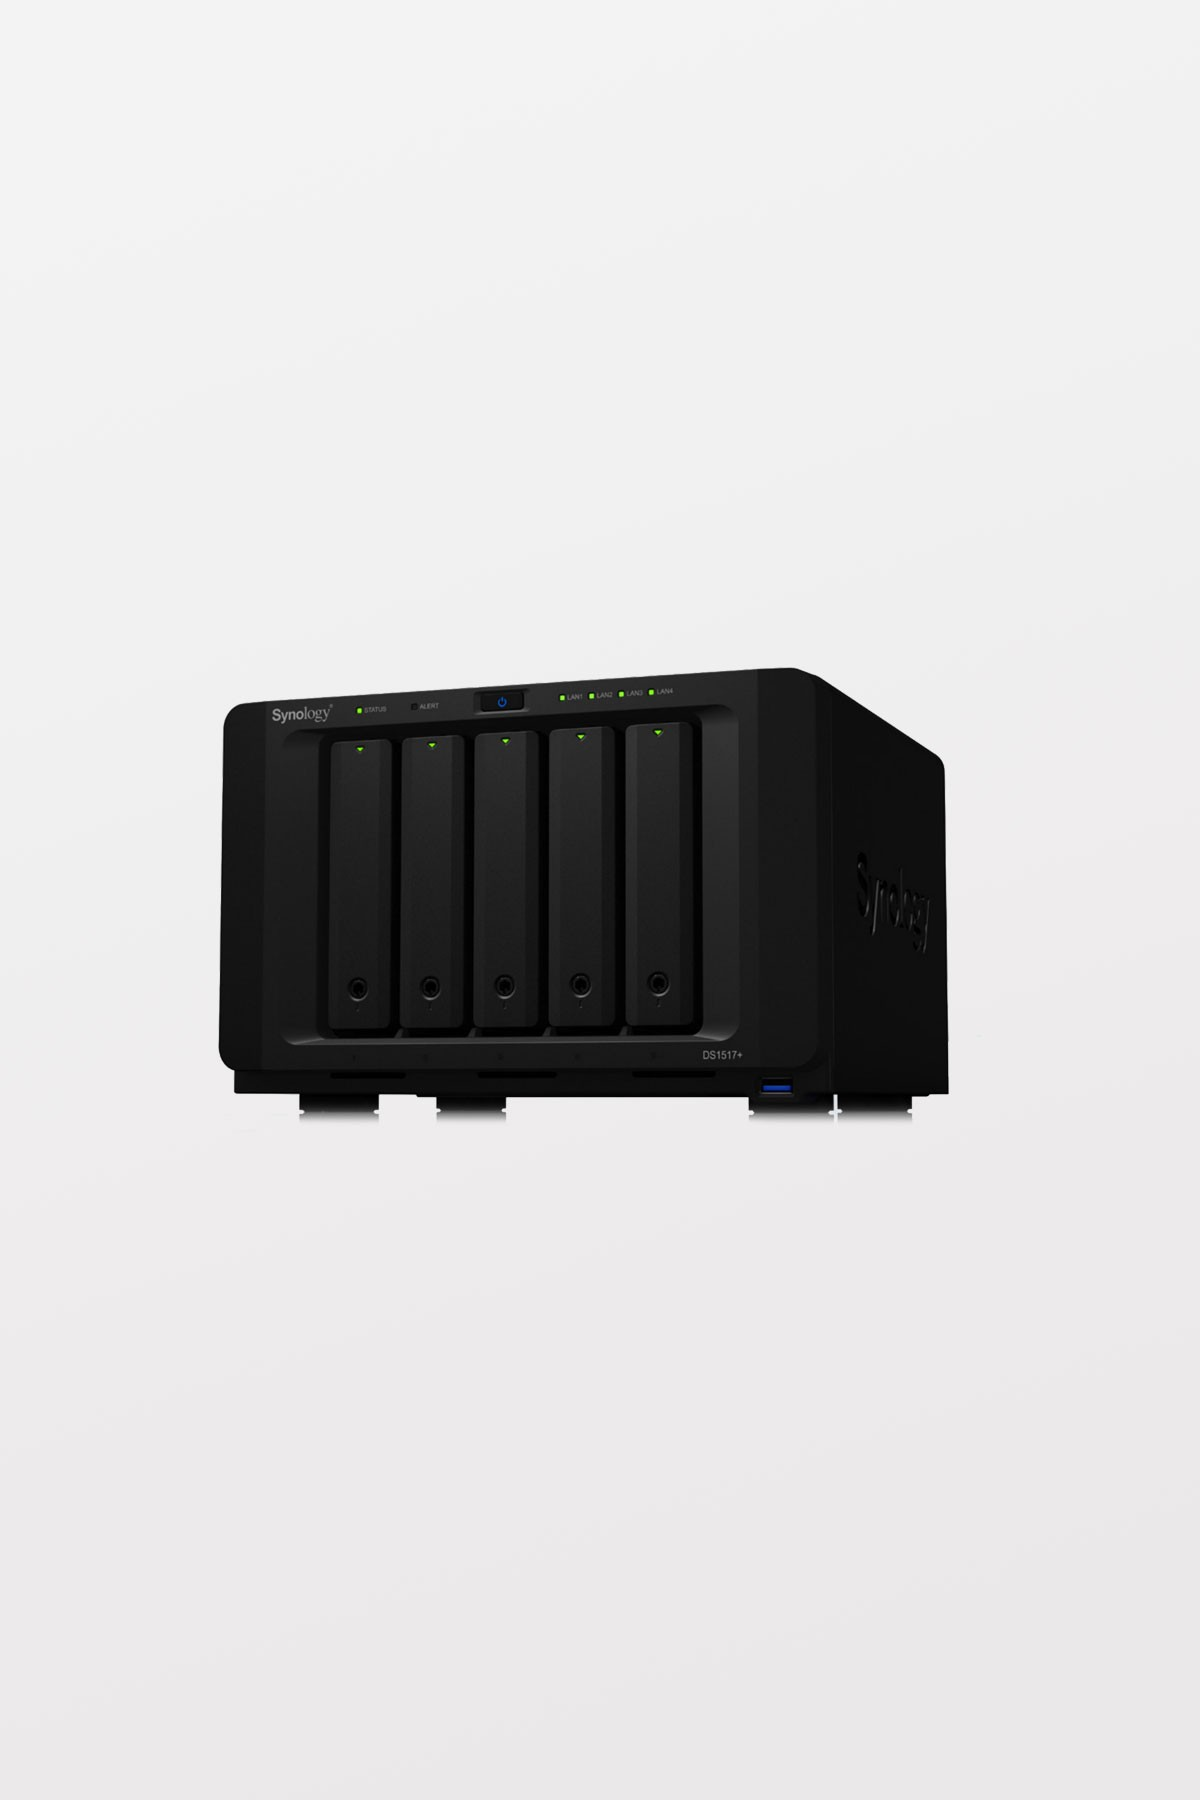 Synology DiskStation DS1517+ 8GB 5-Bay NAS